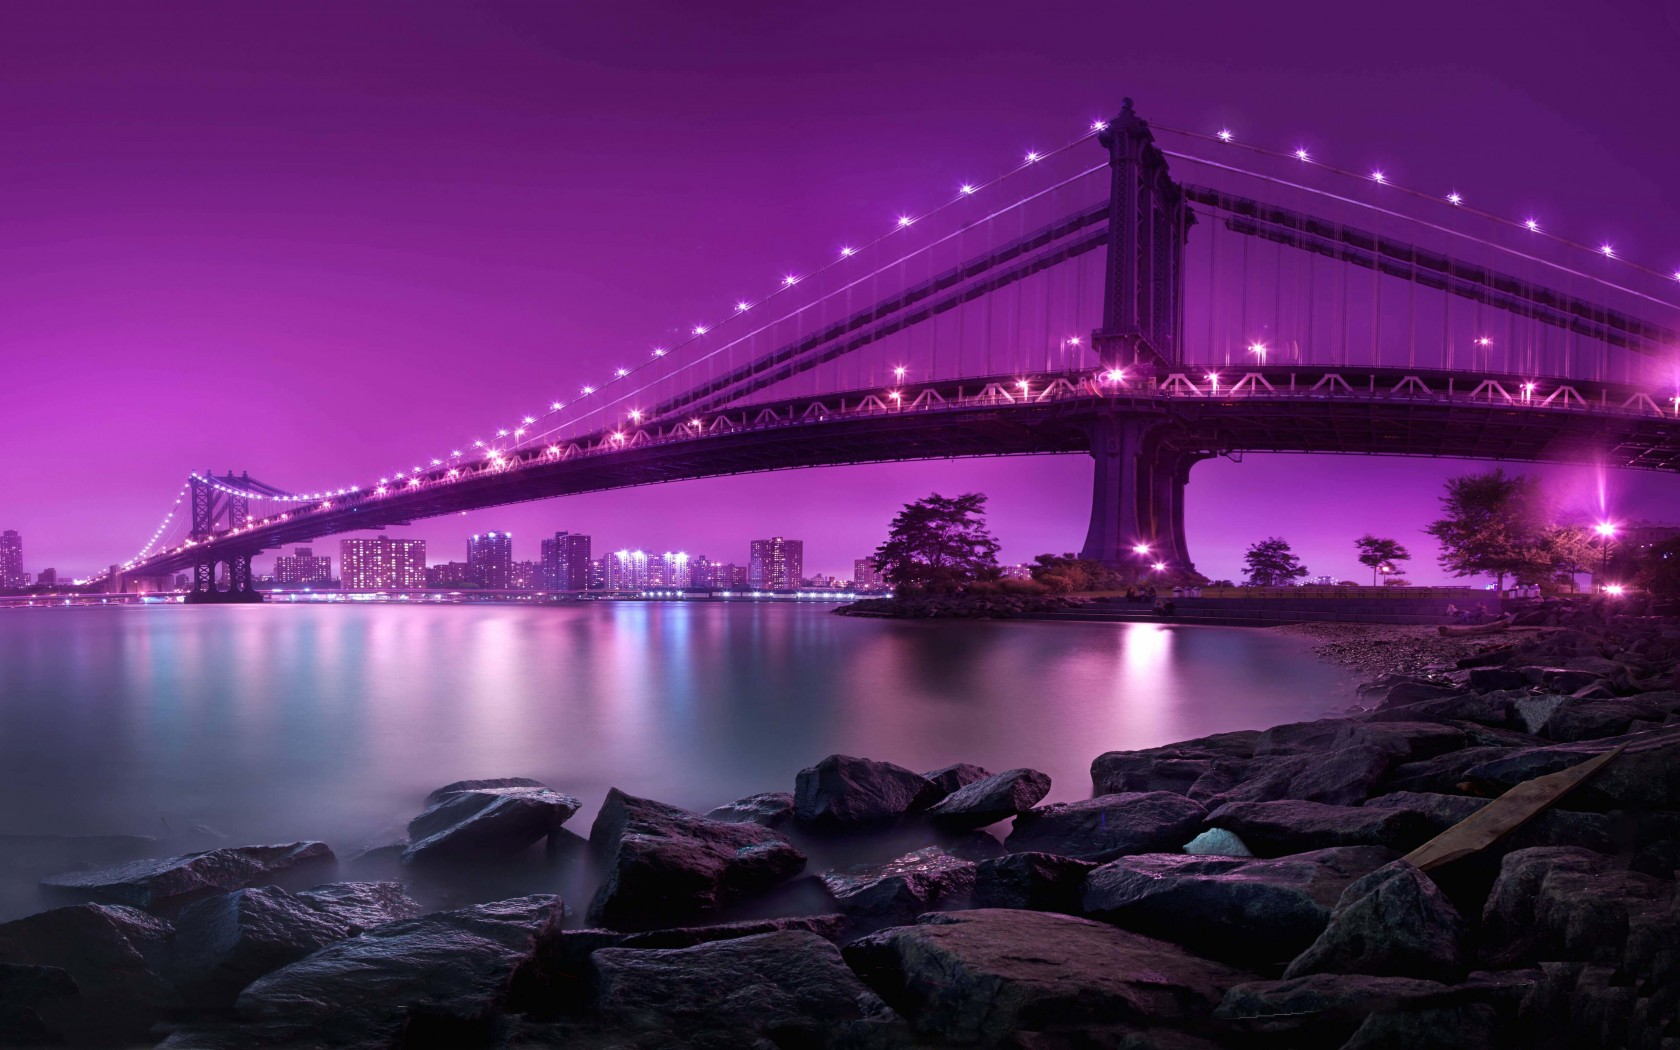 Brooklyn Bridge by night Wallpaper for Desktop 1680x1050